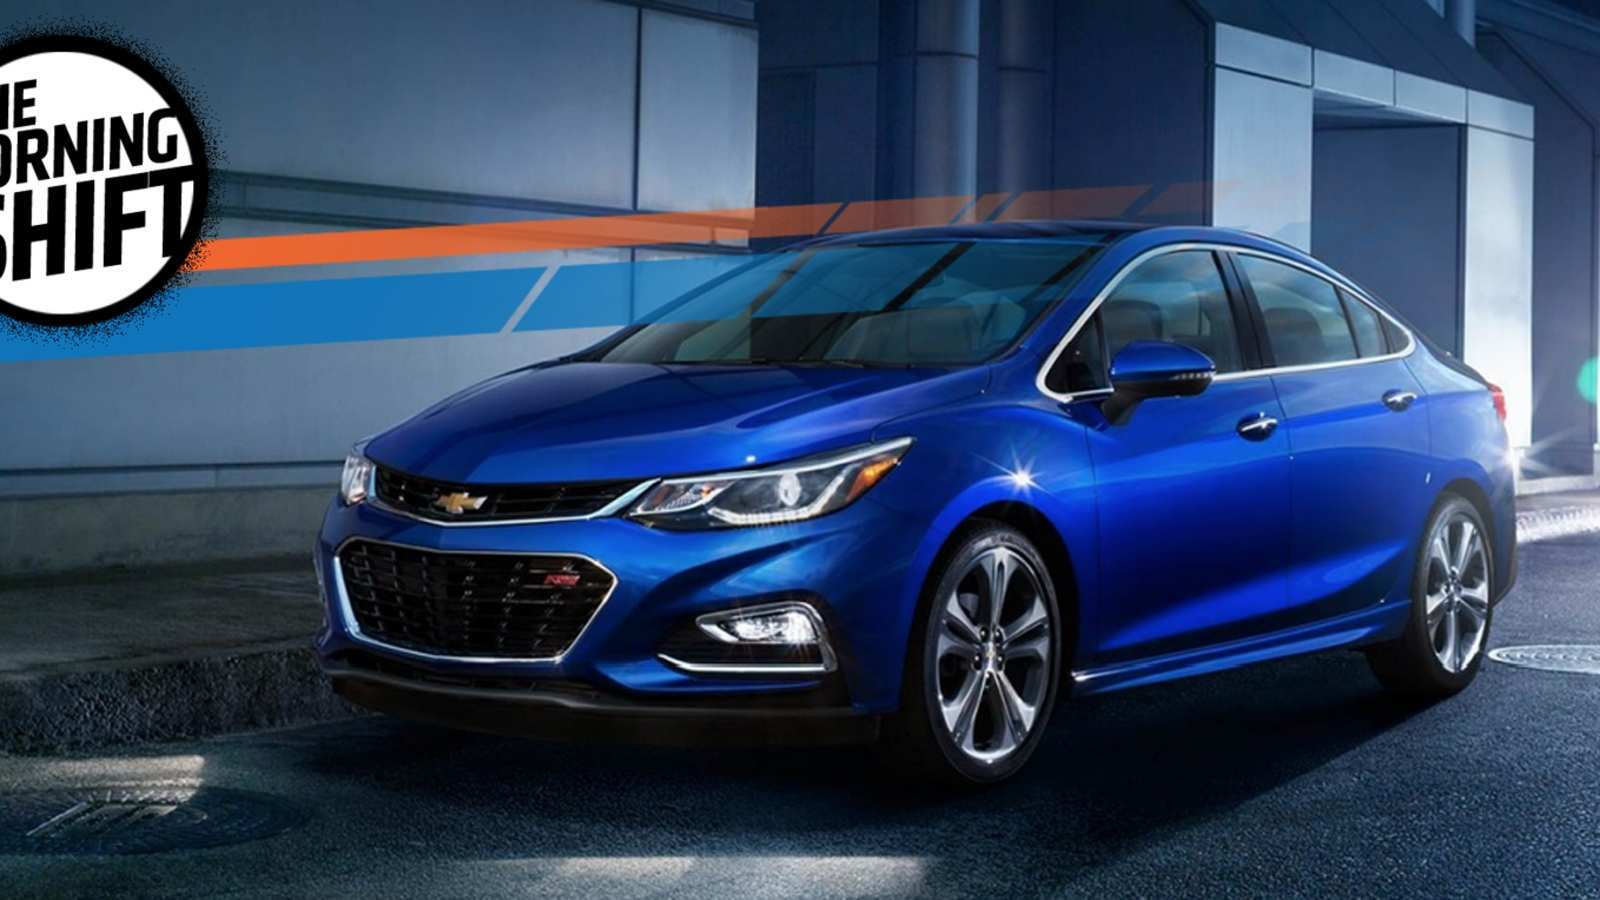 94 All New Will There Be A 2020 Chevrolet Cruze Pictures